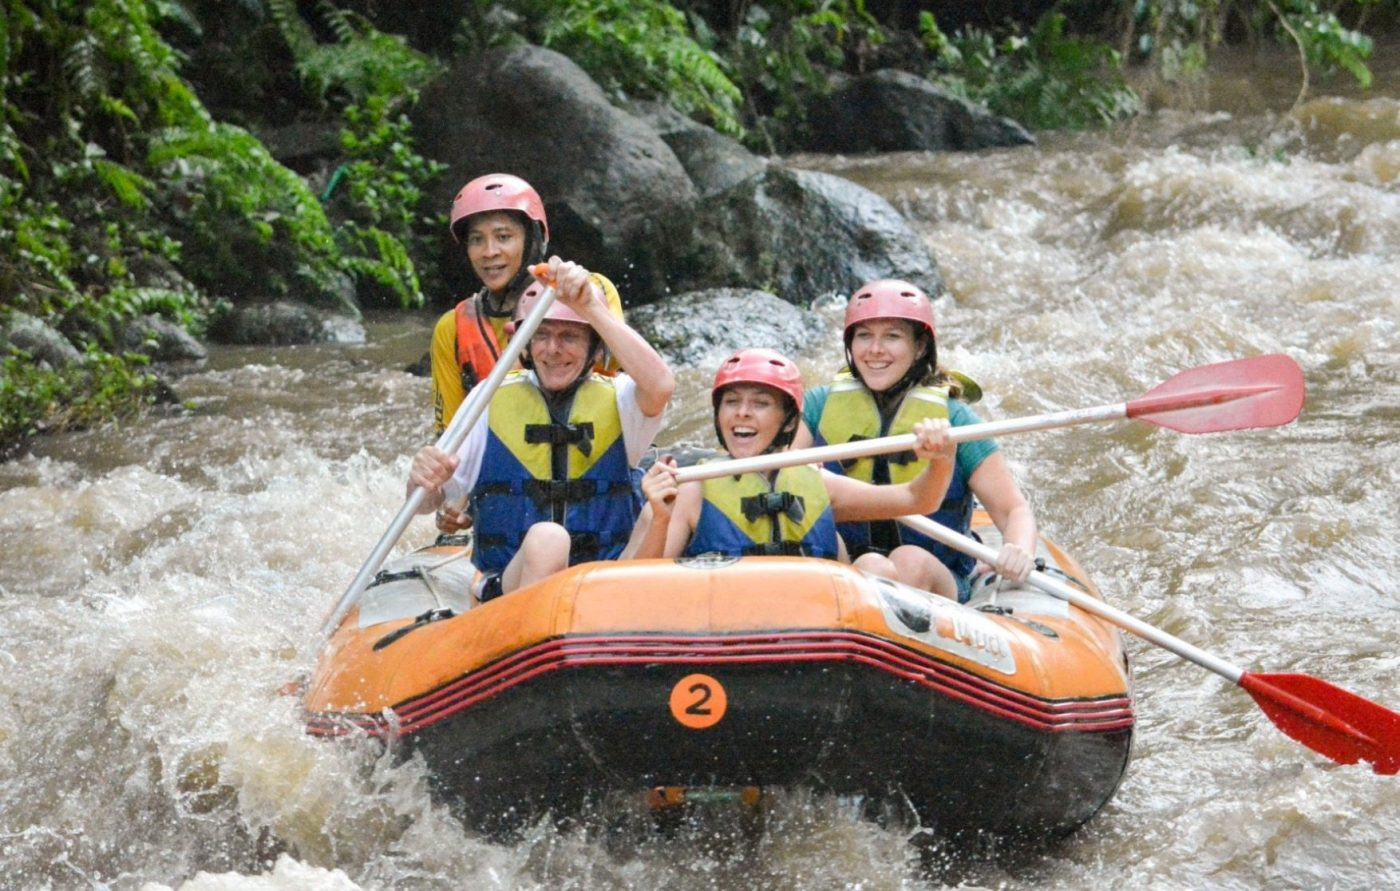 Thrill seeker package - White water rafting. Grab your oars and get ready to rage with this exhilarating rafting adventure on the spectacular Ayung River